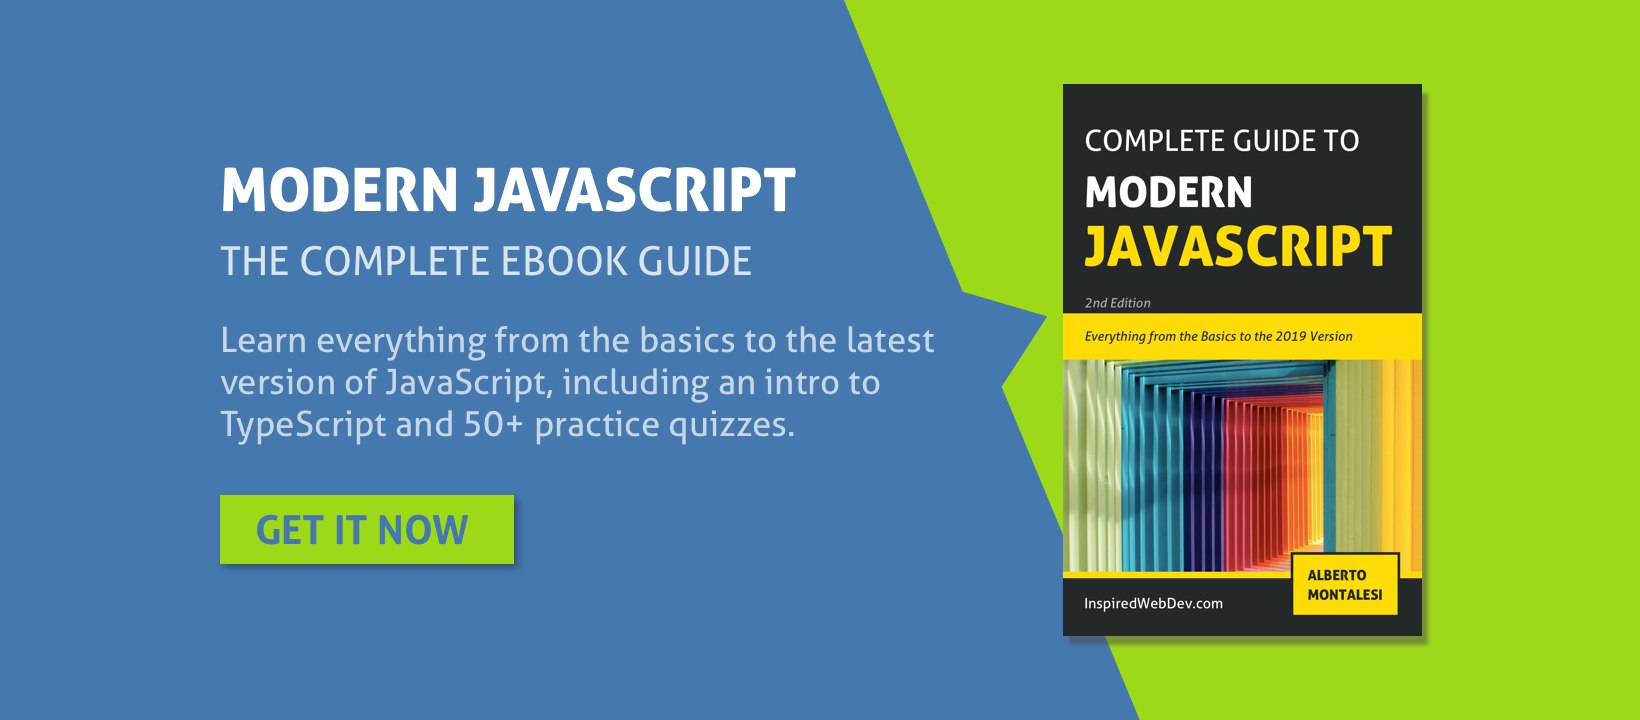 complete guide to modern javascript alberto montalesi ebook banner